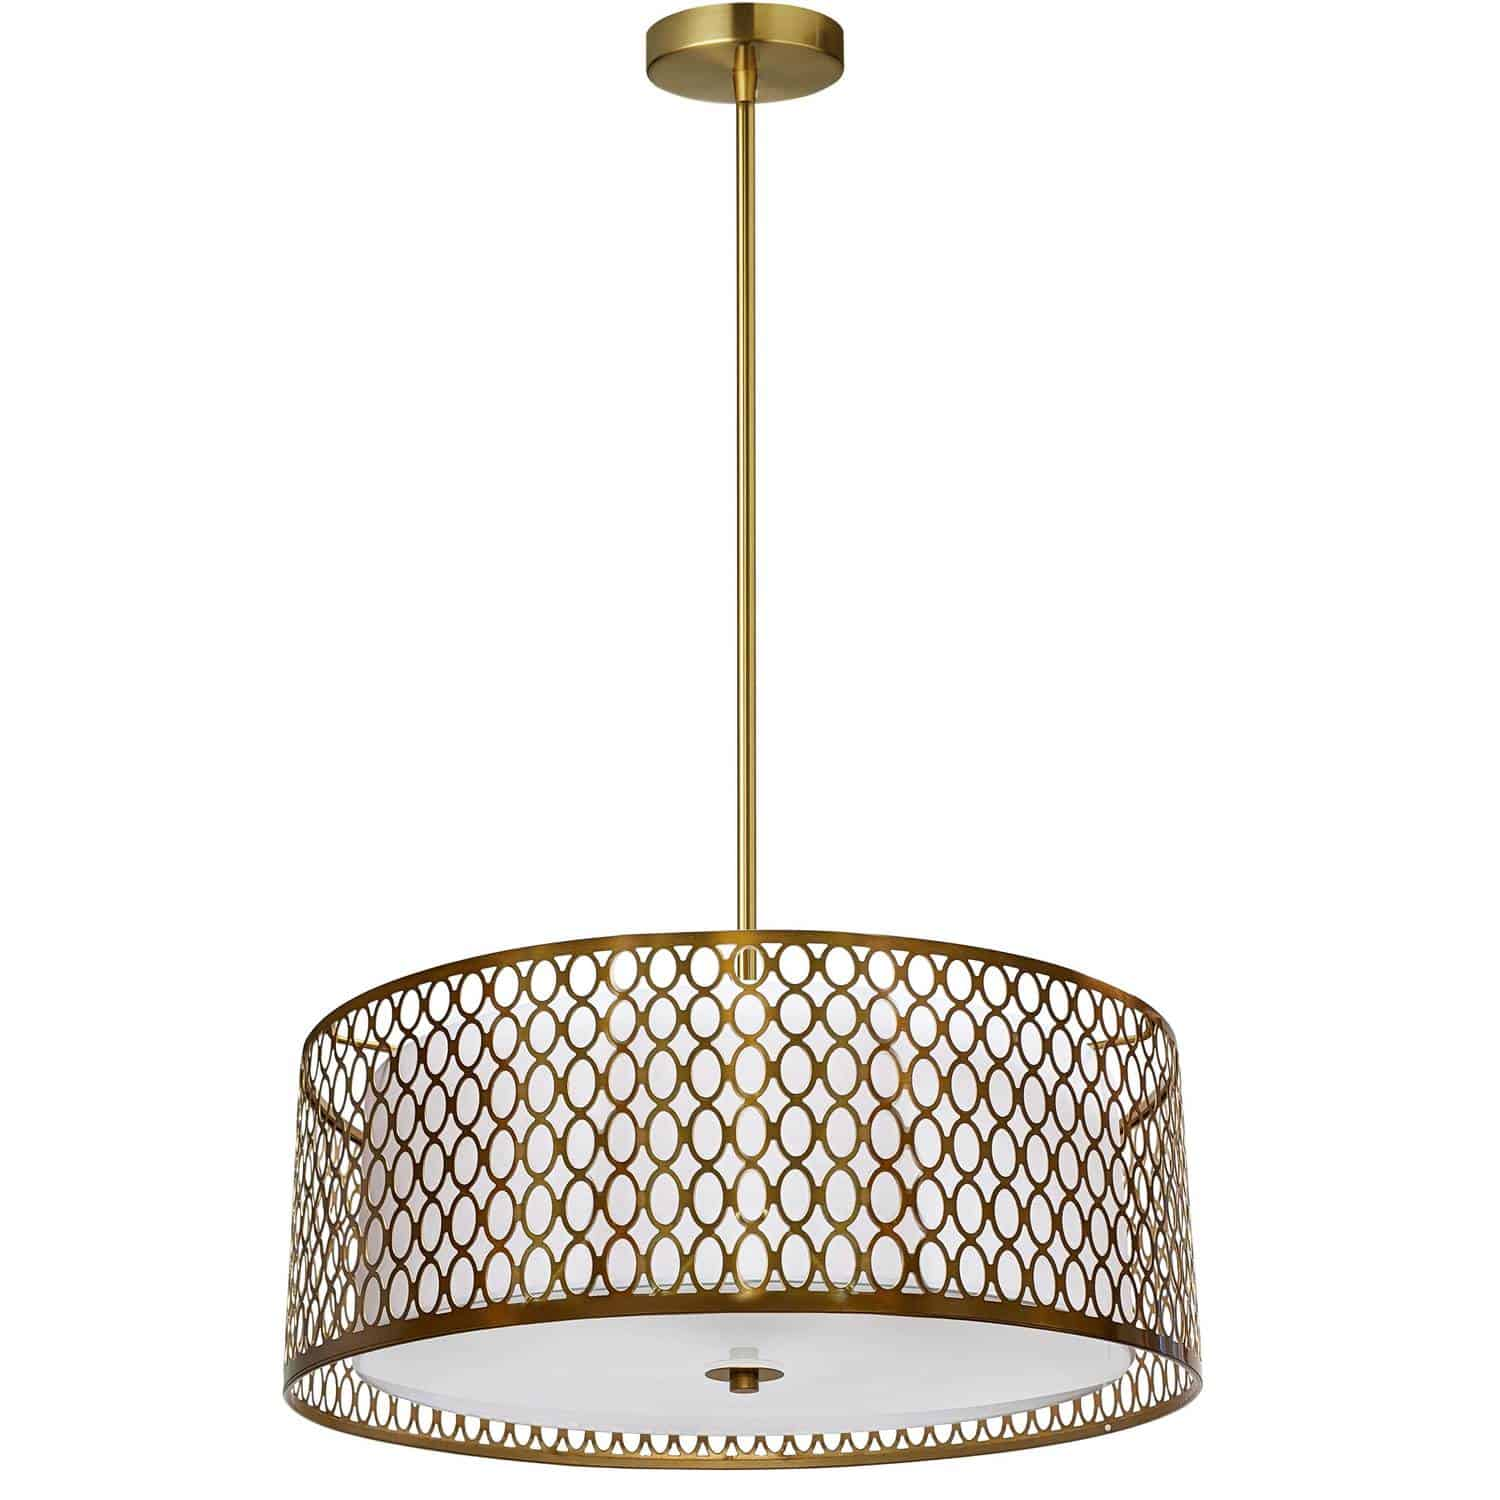 3 Light Aged Brass Pendant with White Shade and Laser Cut Outer